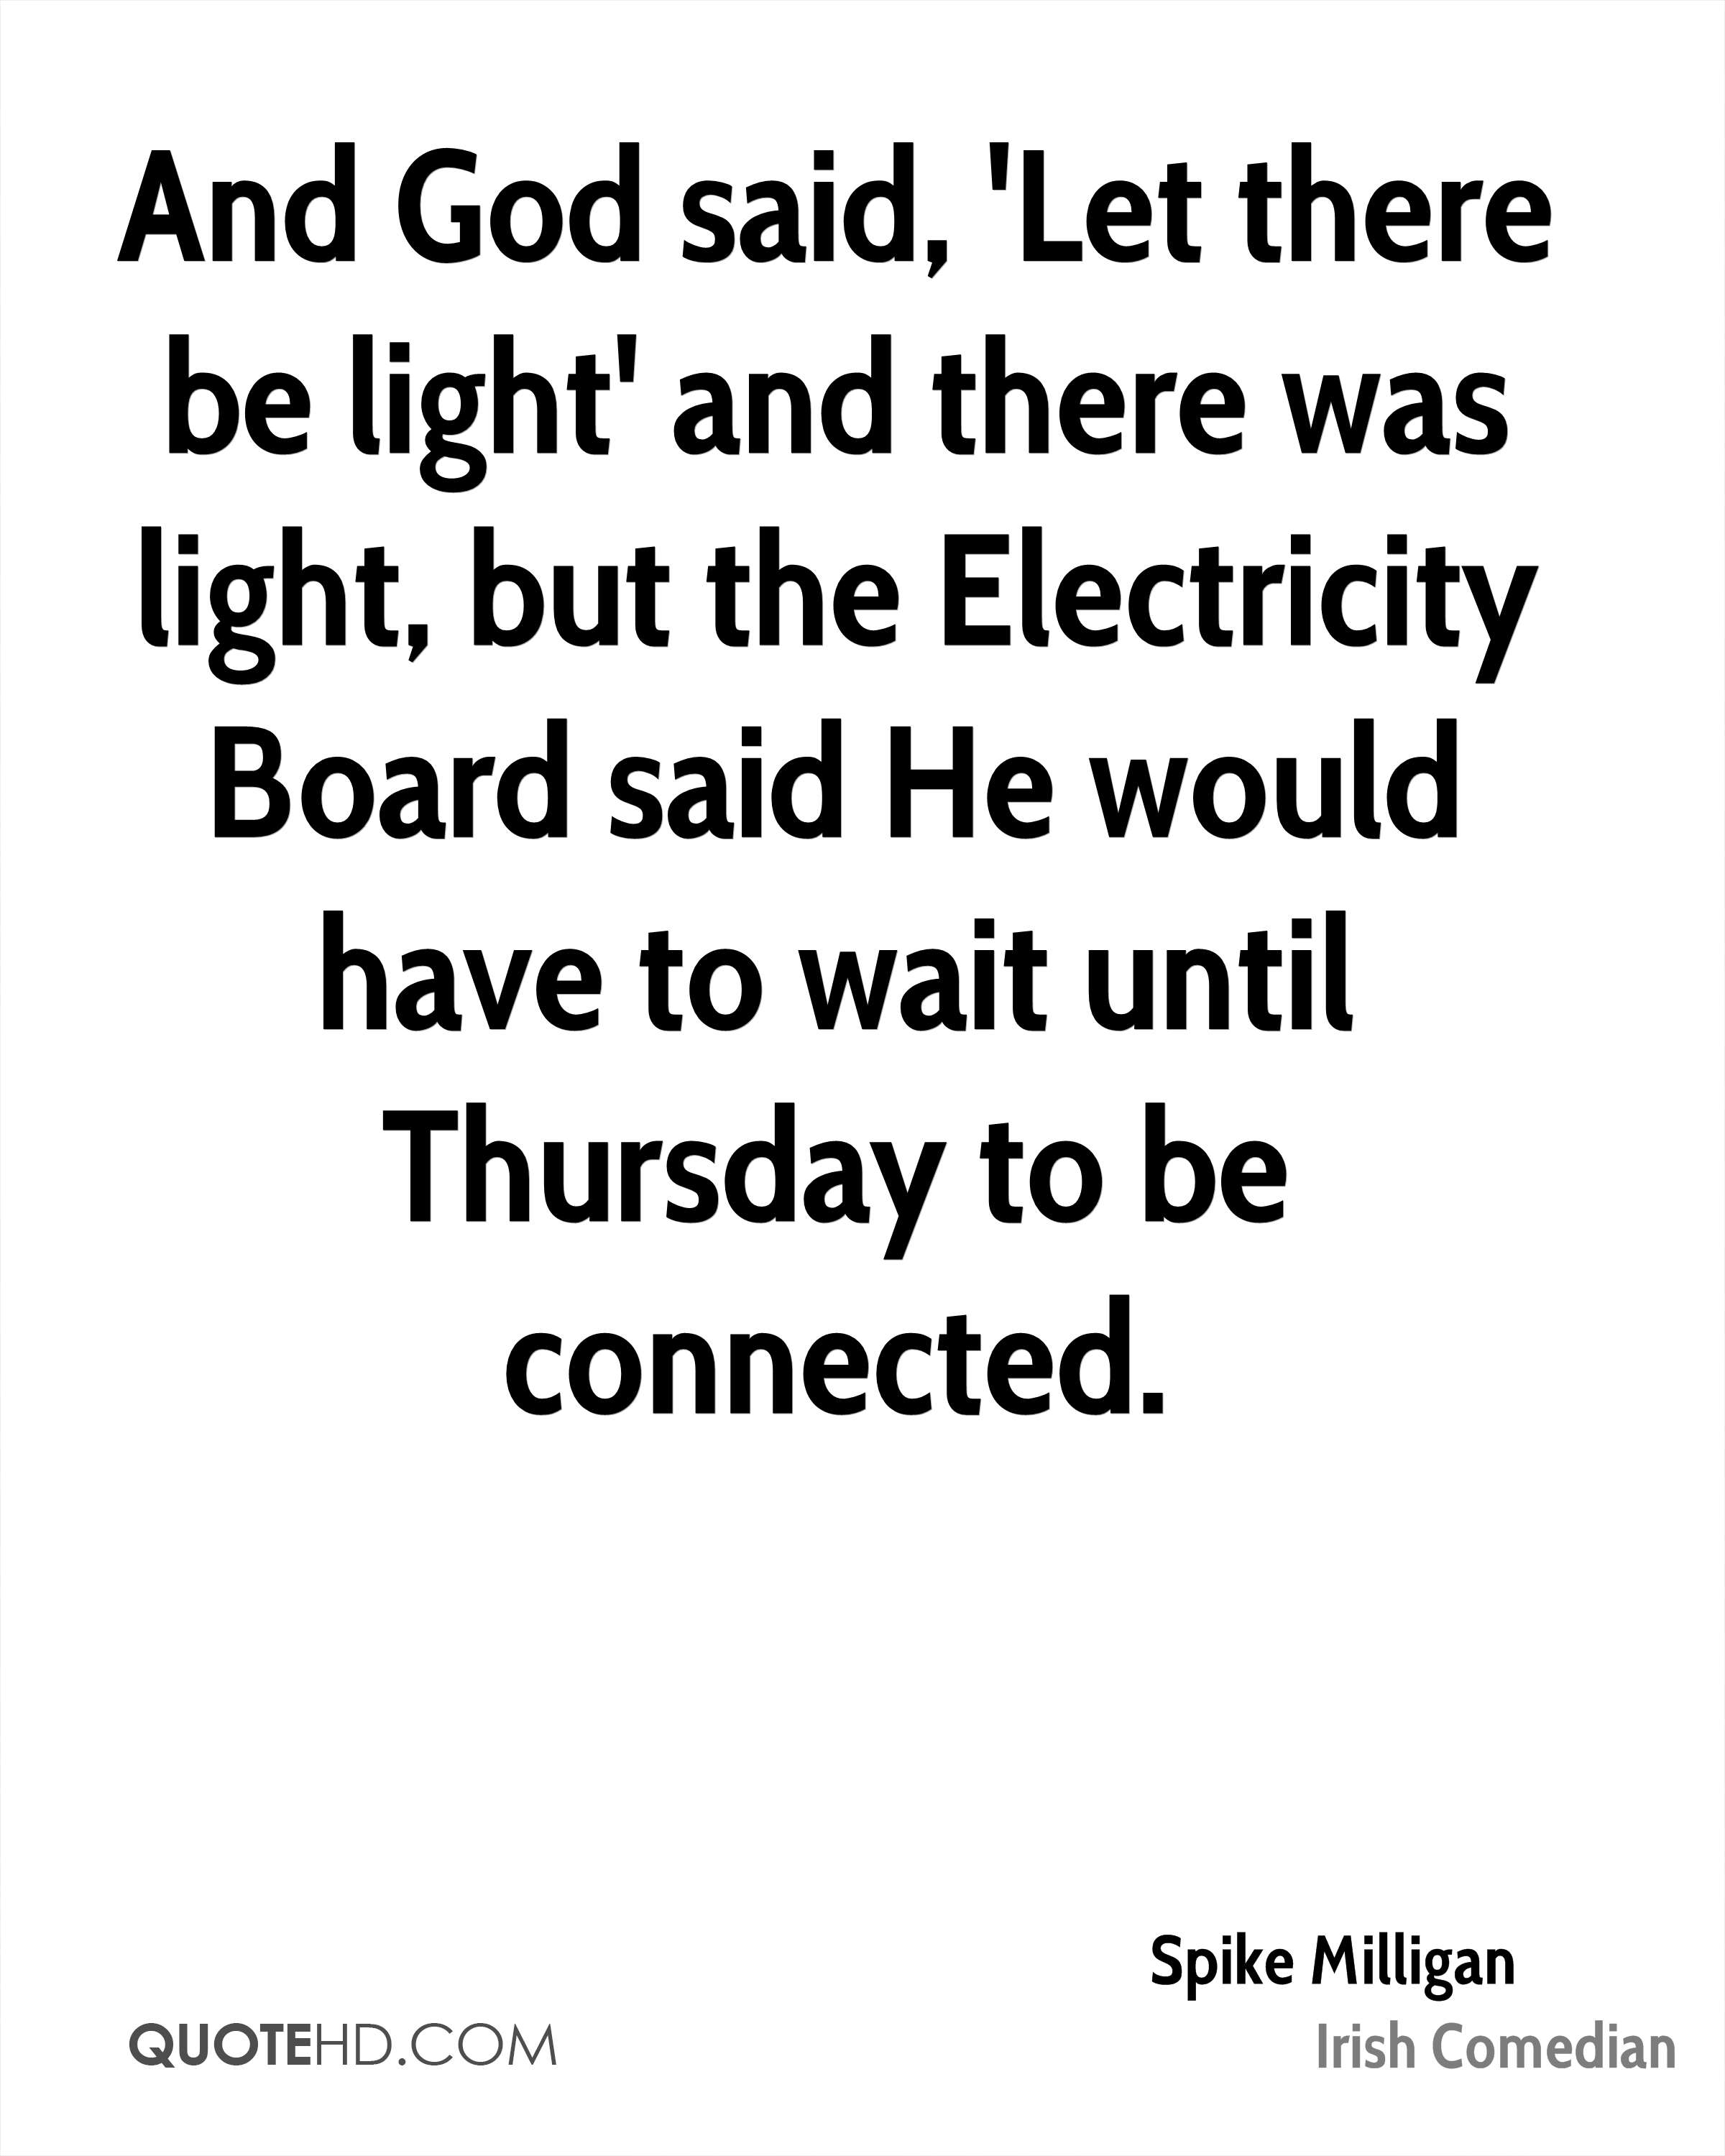 And God said, 'Let there be light' and there was light, but the Electricity Board said He would have to wait until Thursday to be connected.